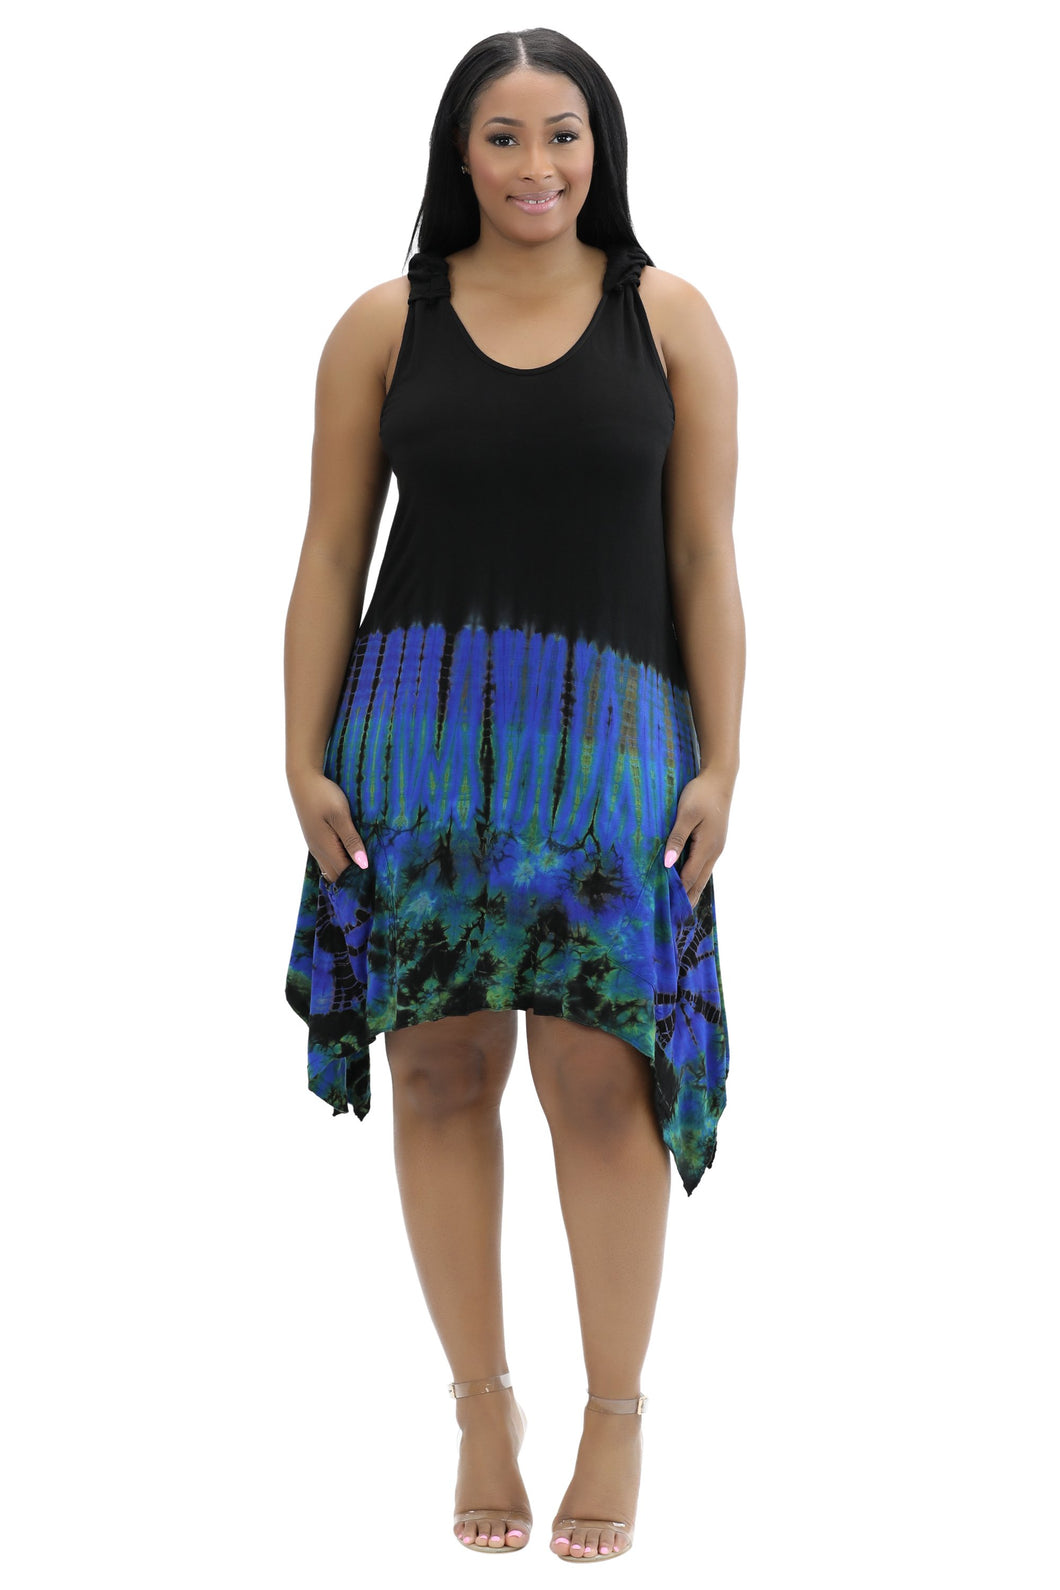 Spandex Tie Dye Dress w/ Pockets SP19